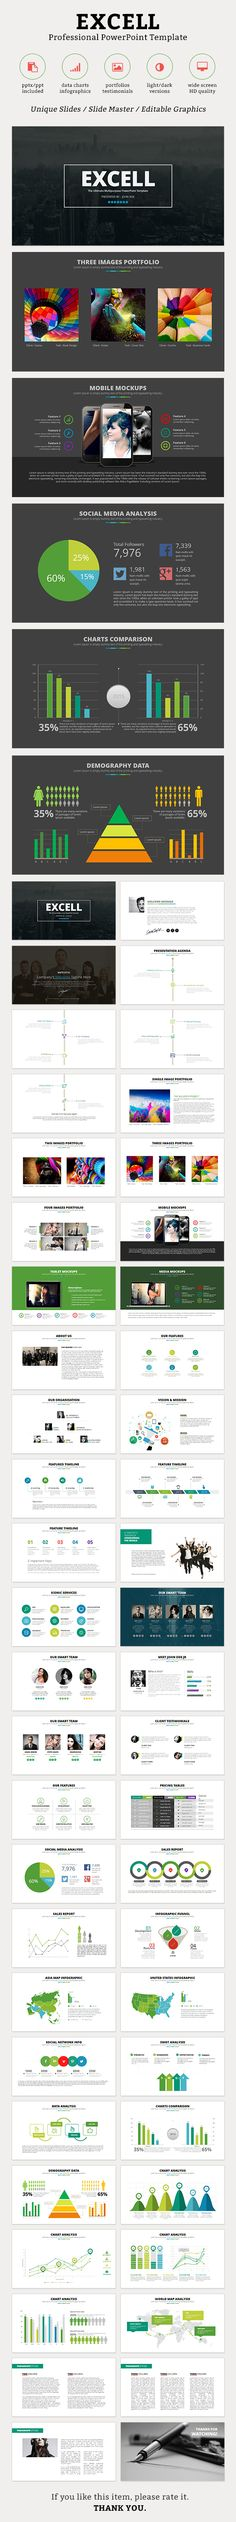 Excell PowerPoint Template is suitable for any Business Presentations. #ExcellPowerPoint #1studio #GraphicRiver